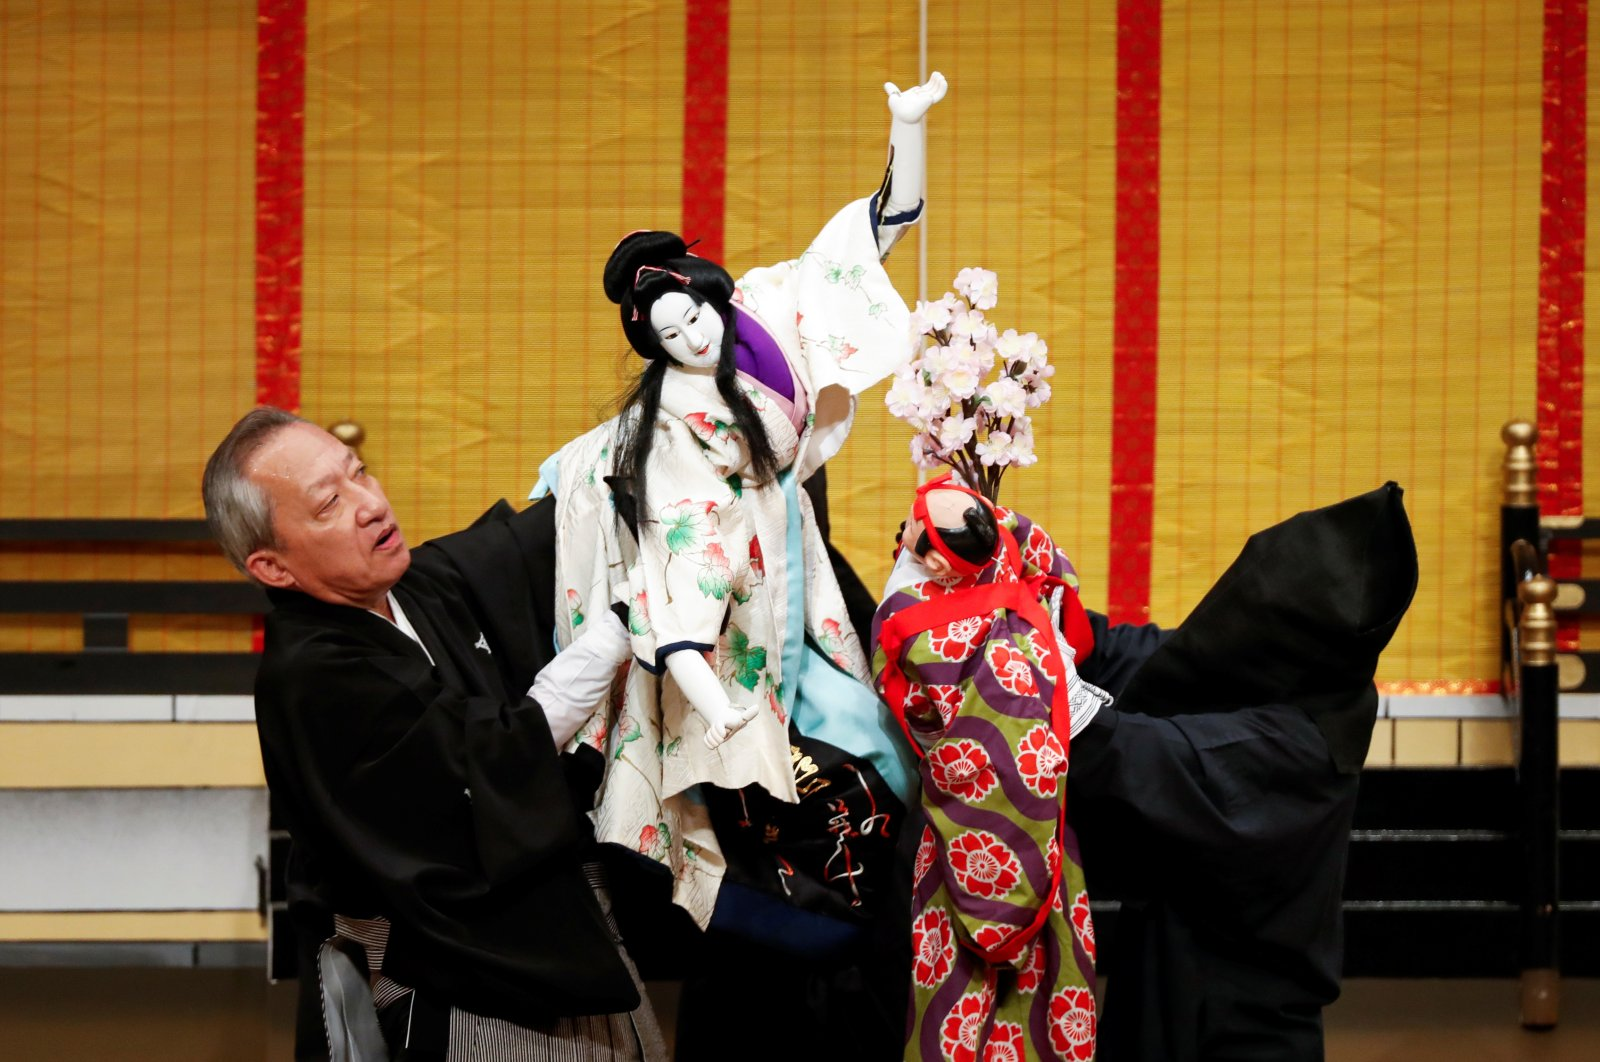 """Bunraku puppeteer Kanjuro Kiritake, who was designated a Living National Treasure by the Japanese government, performs Bunraku during a program titled """"Komochi Yamanba"""" (""""The Pregnant Mountain Ogress"""") at the National Theatre in Tokyo, Japan, Sept.7, 2020. (REUTERS PHOTO)"""